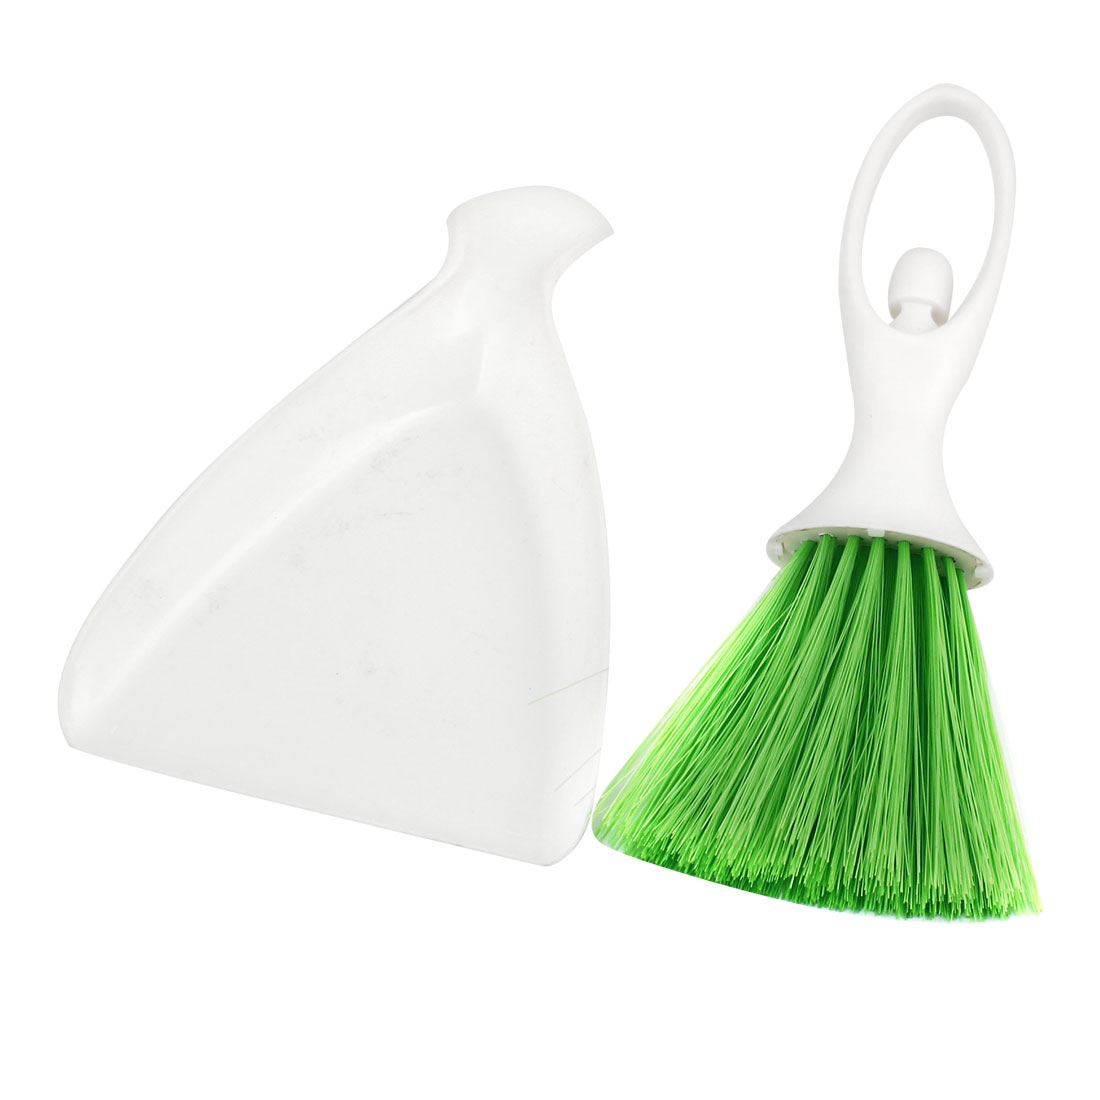 Green White Plastic Desktop Computer Brush Cleaner Dustpan Cleaning Tool Set